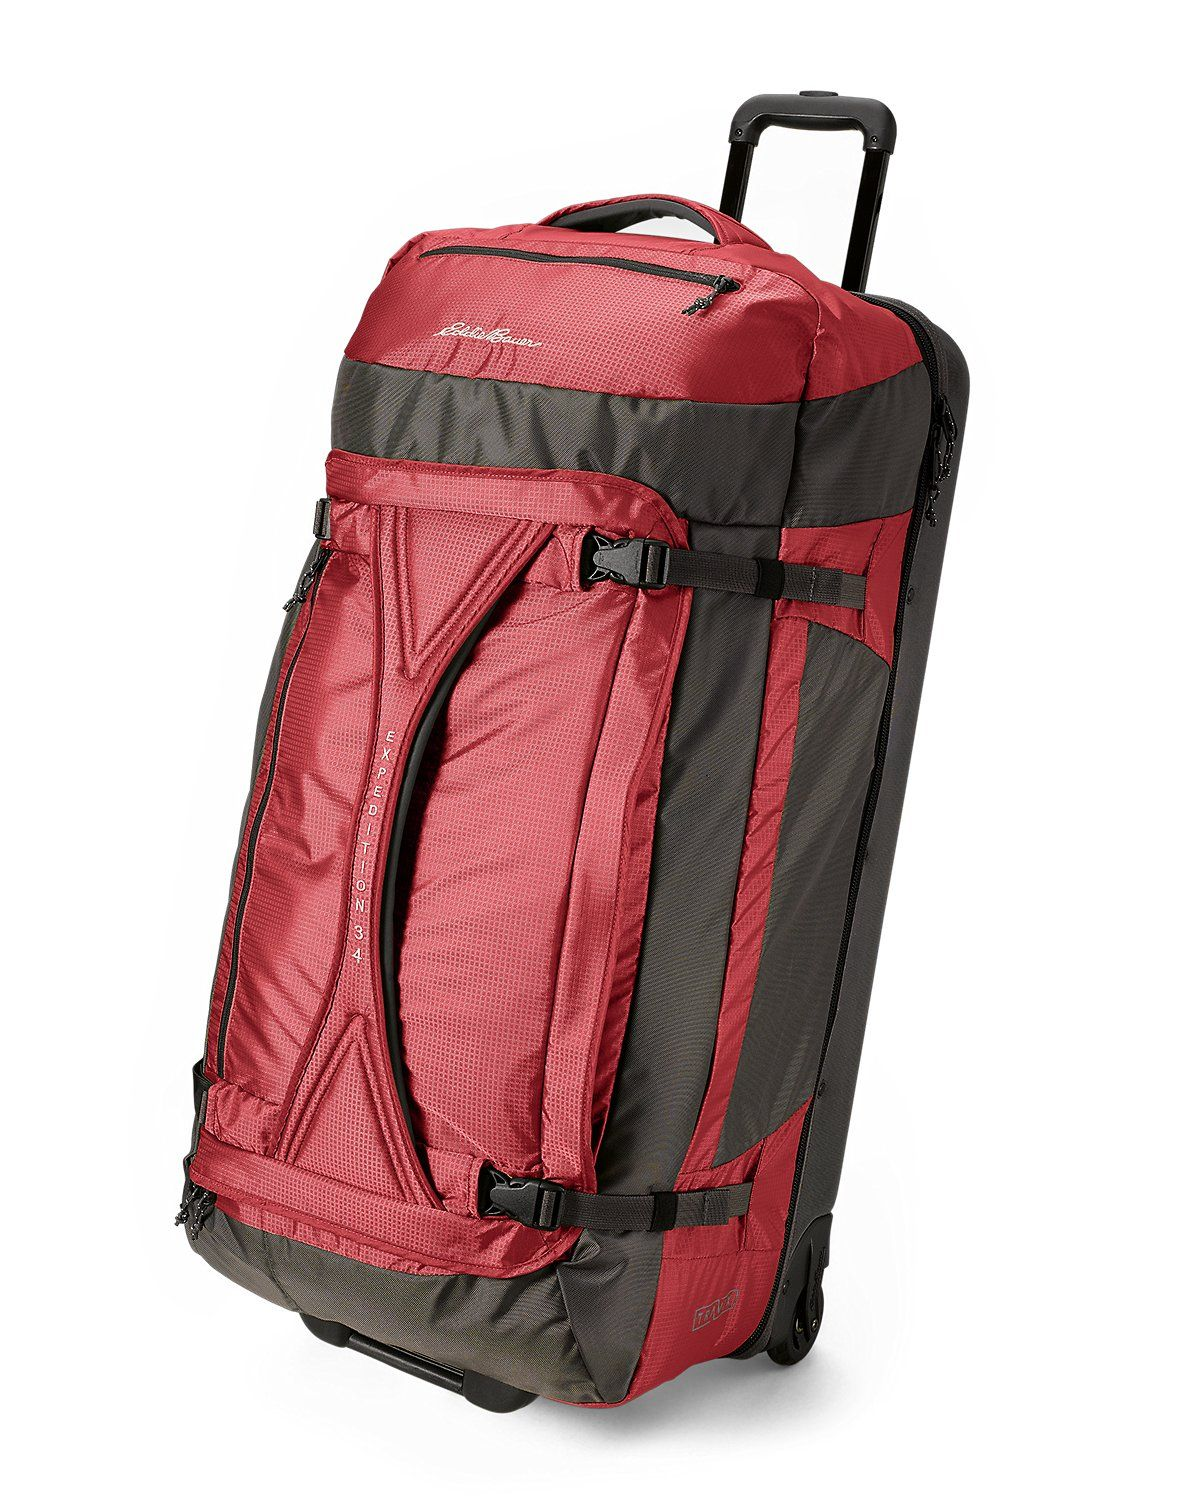 Expedition Drop Bottom Rolling Duffel - Extra Large   Would Like ... 6983cdfaa4